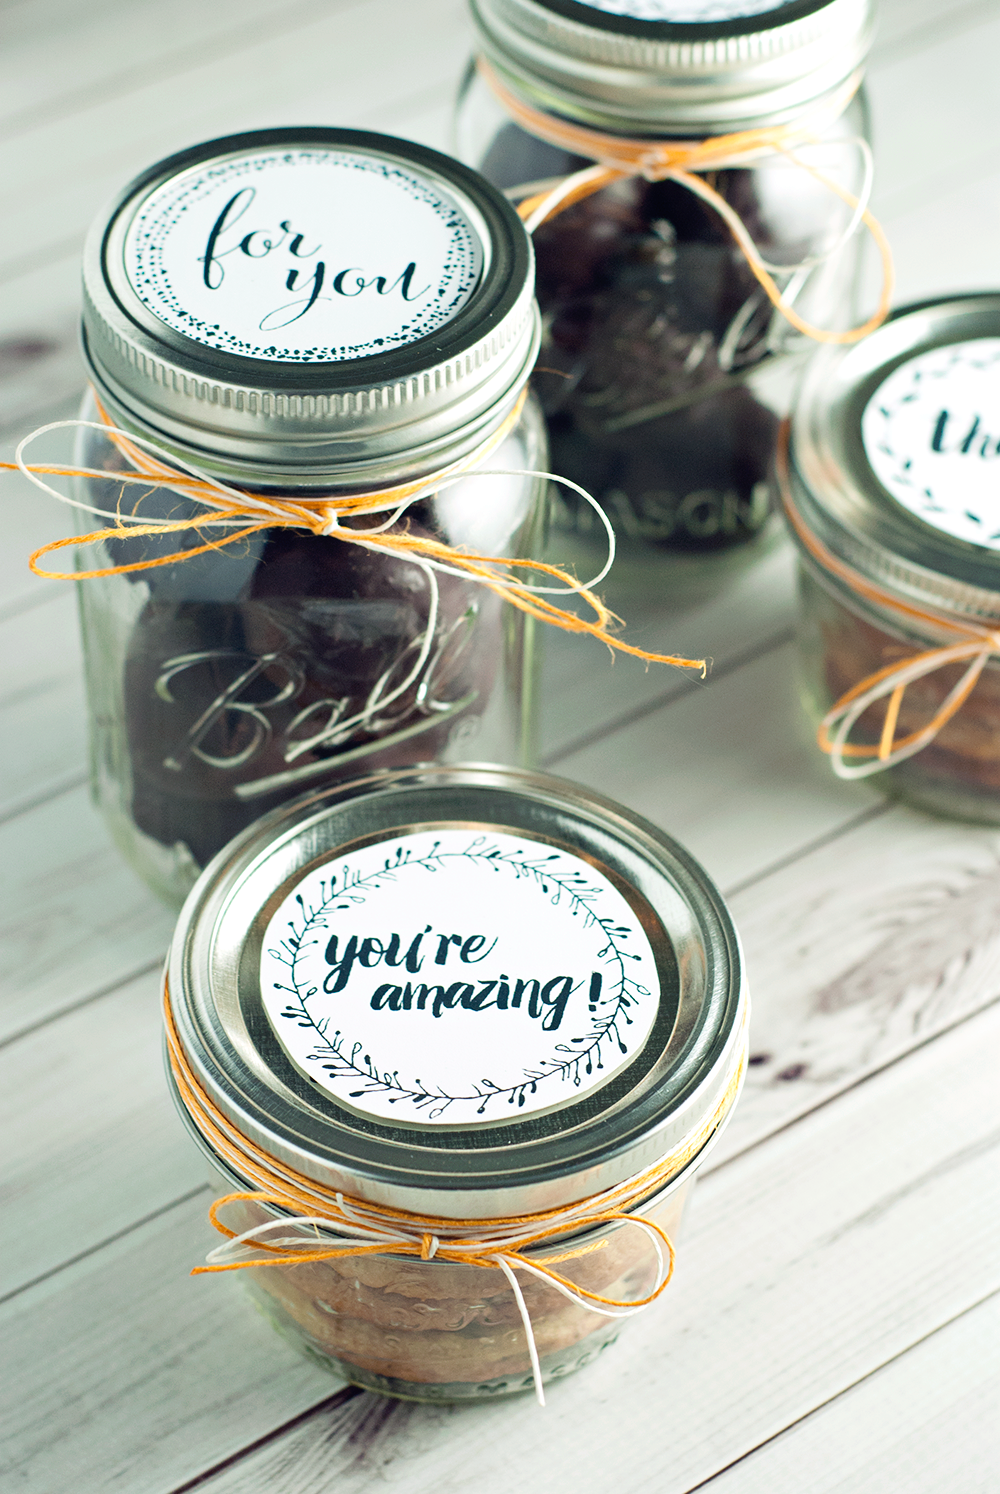 Share the Joy this season by sharing adorable giftable treats in mason jars! Get the recipe for these cookies and truffles, as well as printable rounds for mason jar lids!